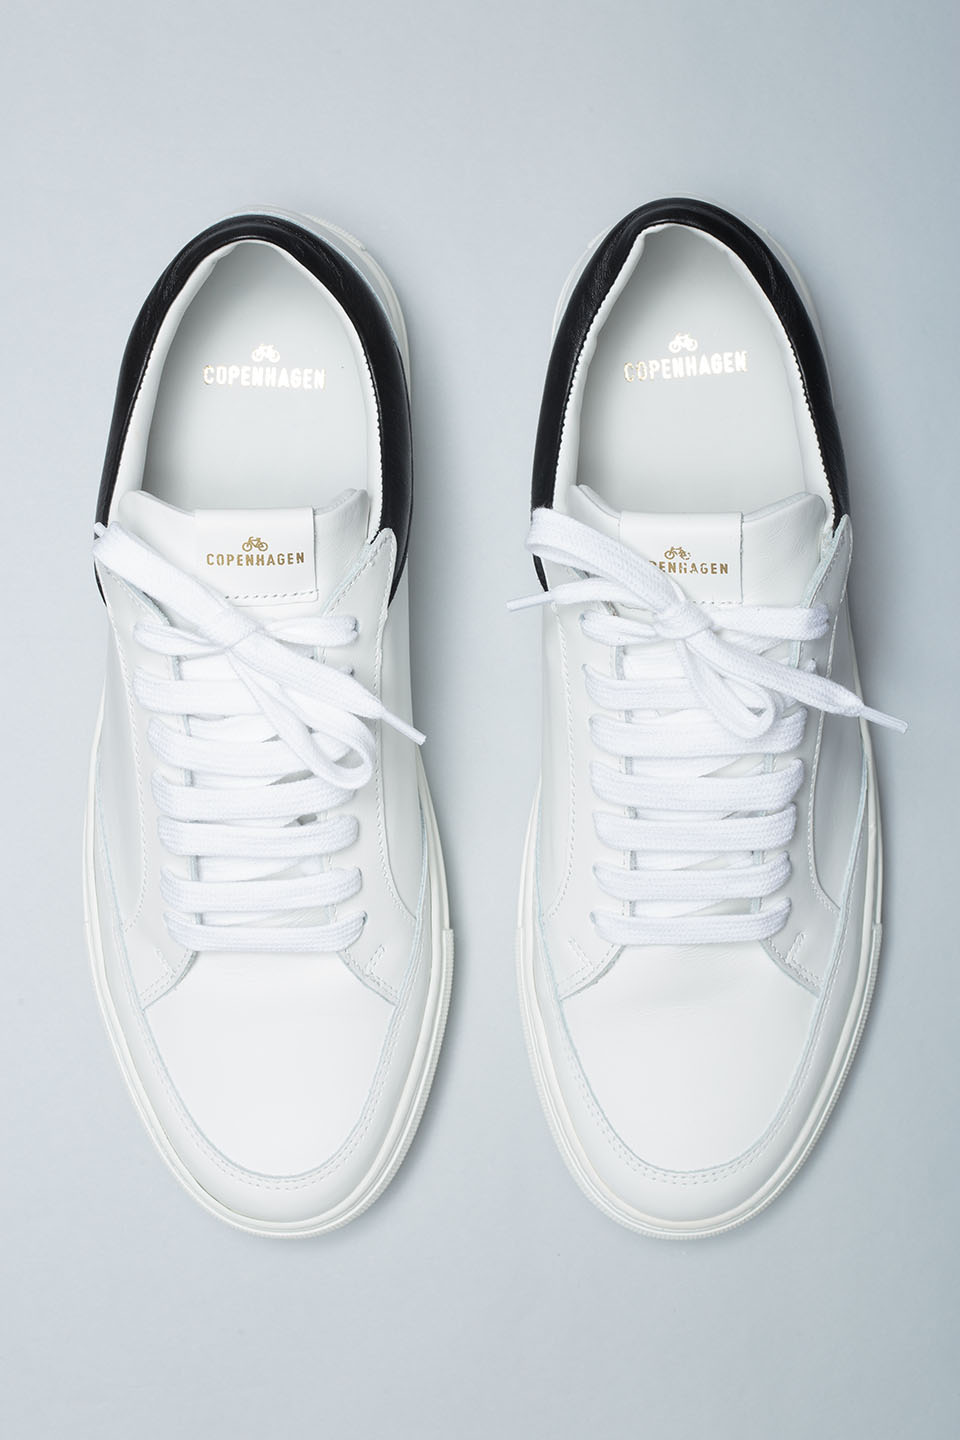 CPH112M vitello white/black - alternative 2